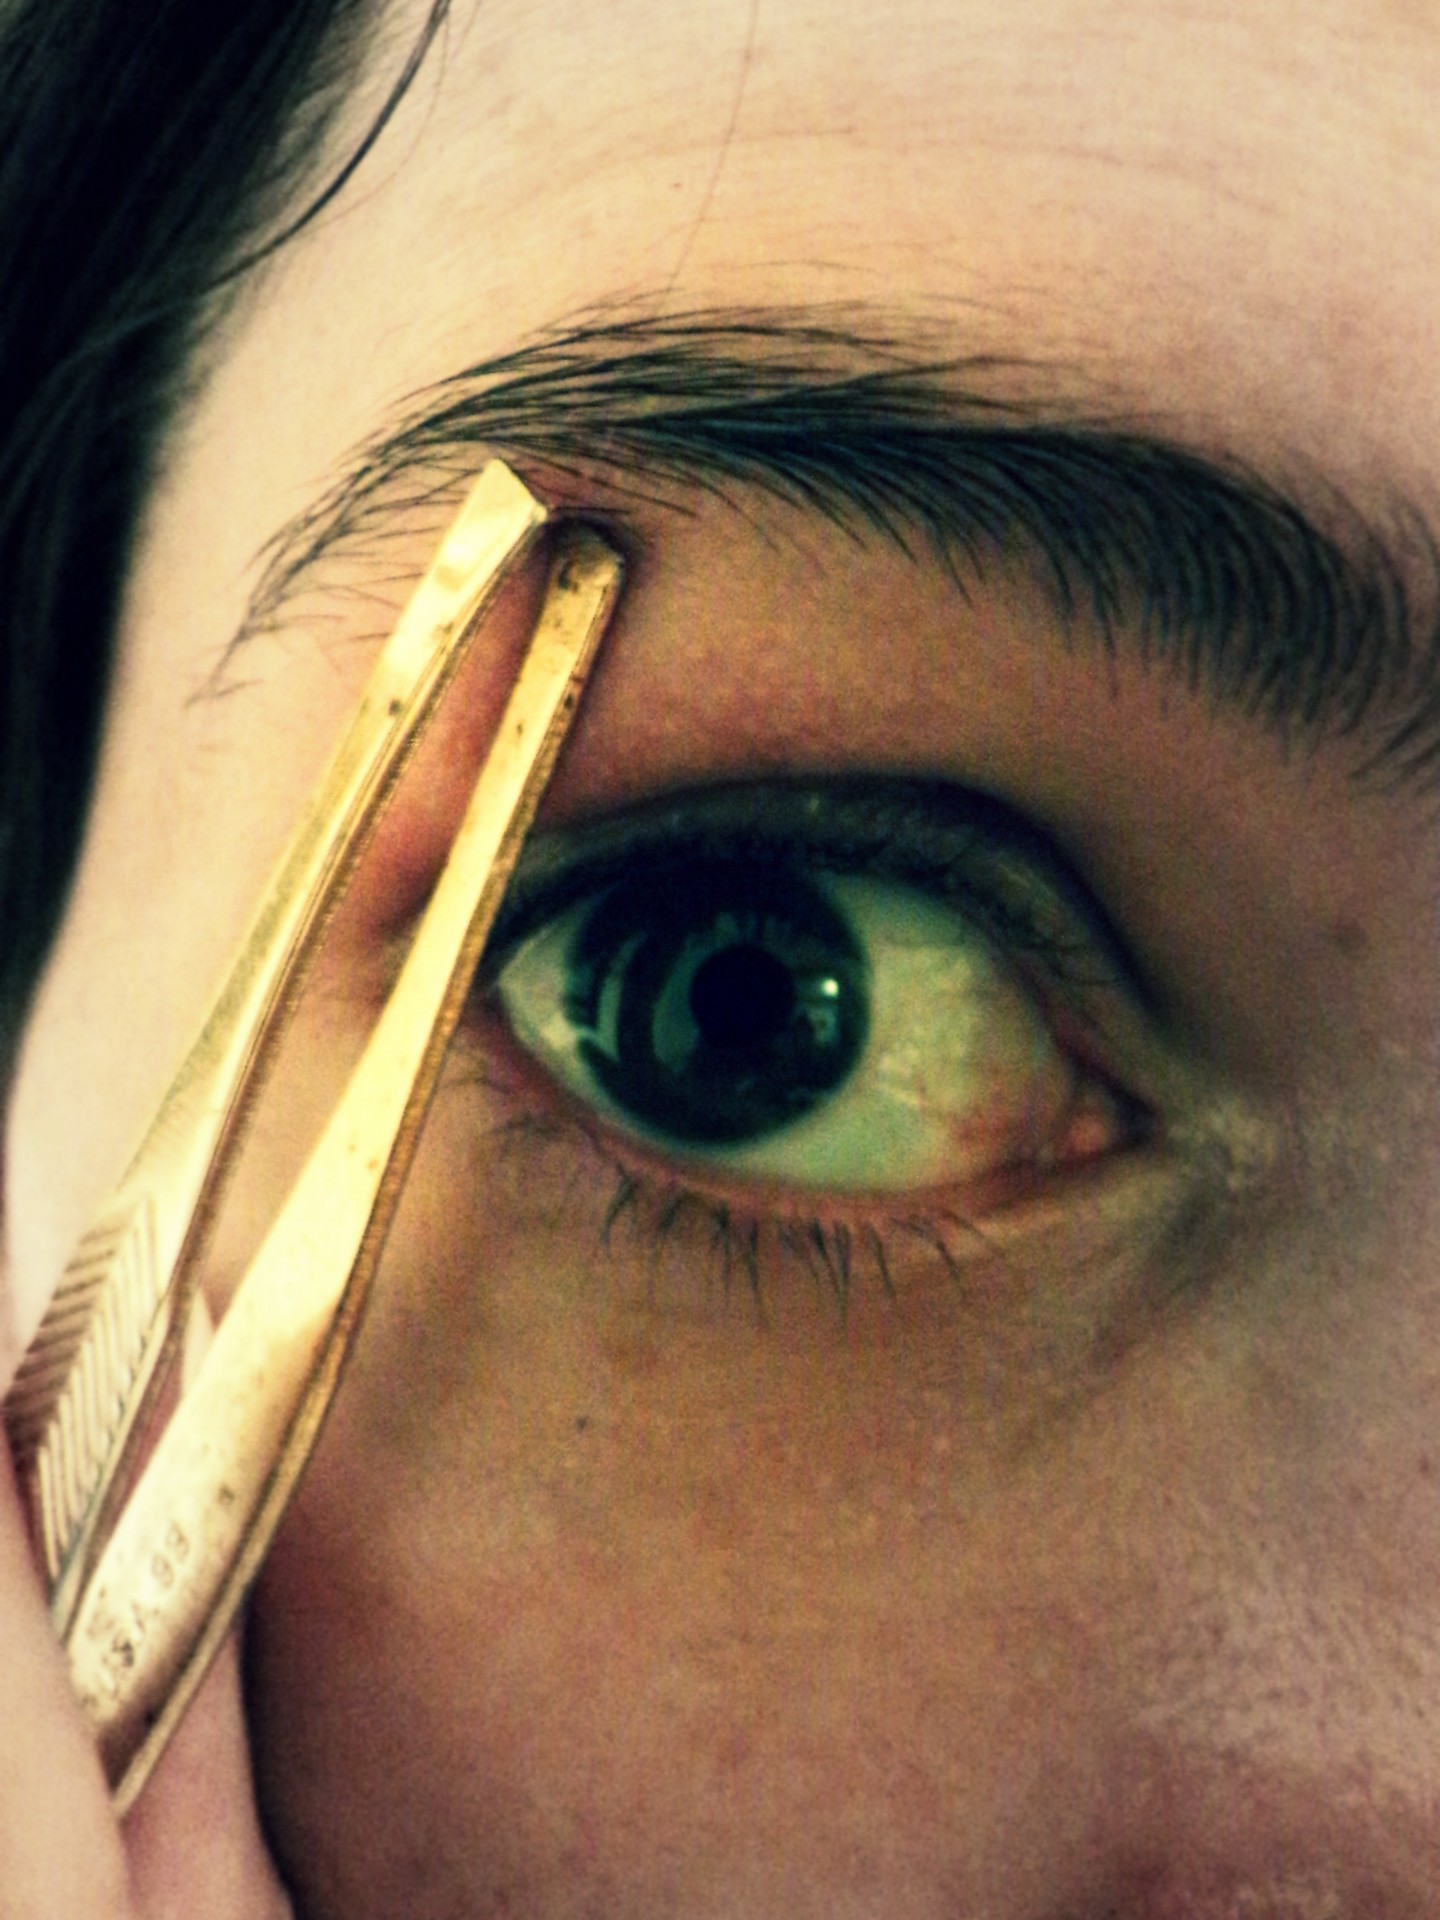 a woman uses a tweezer to remove unwanted hair from eyebrows